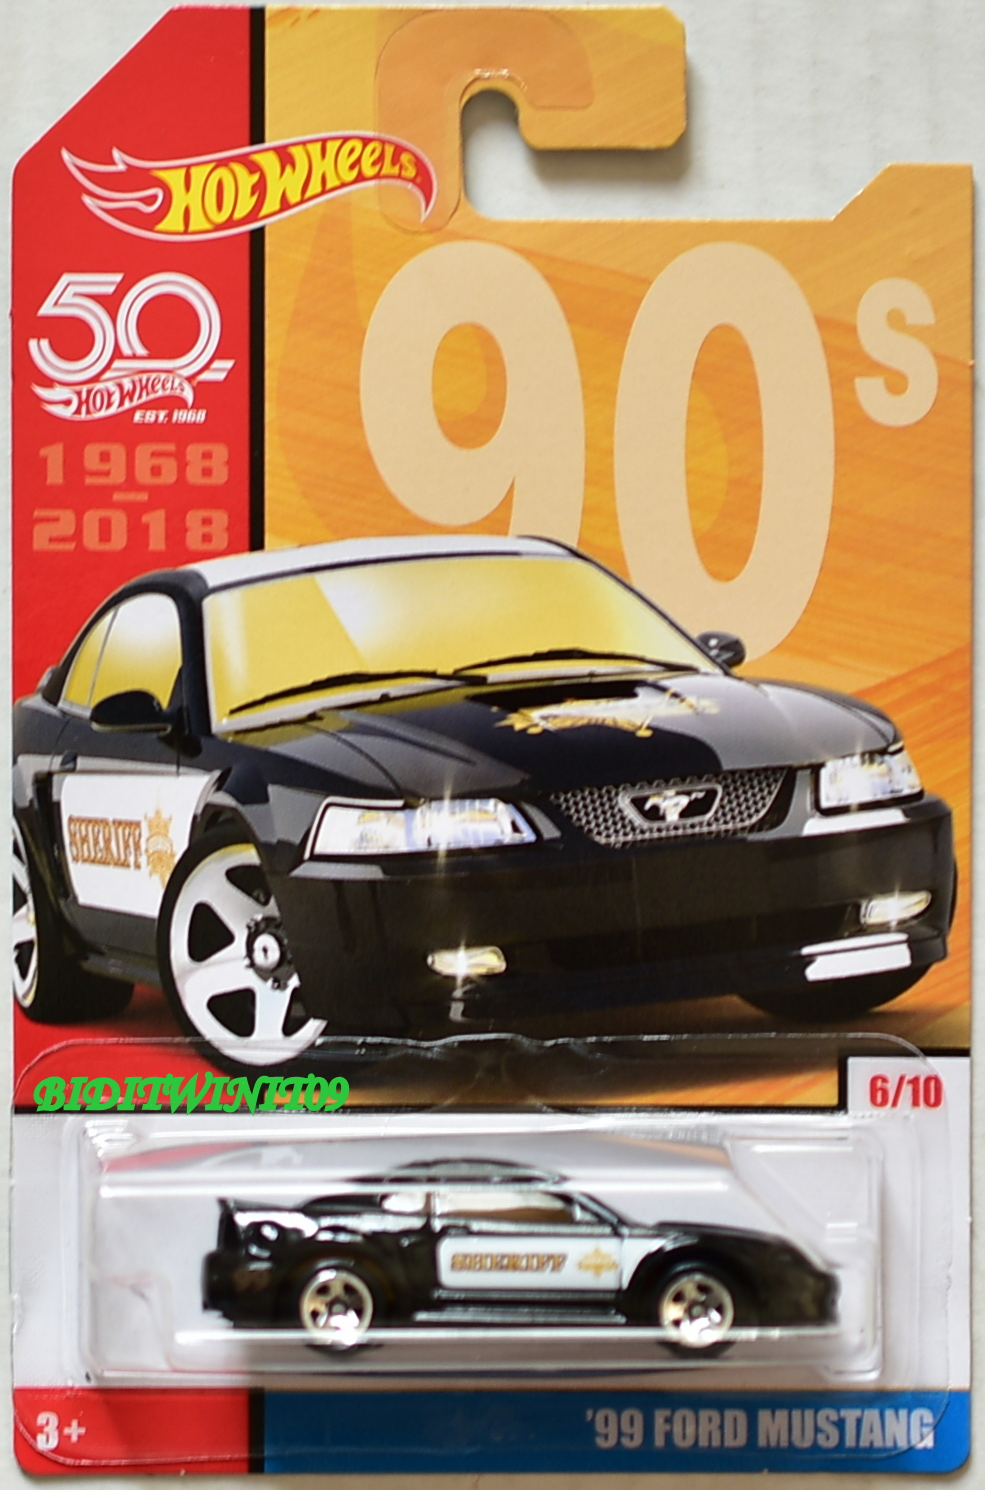 HOT WHEELS 50 YEARS '99 FORD MUSTANG #6/10